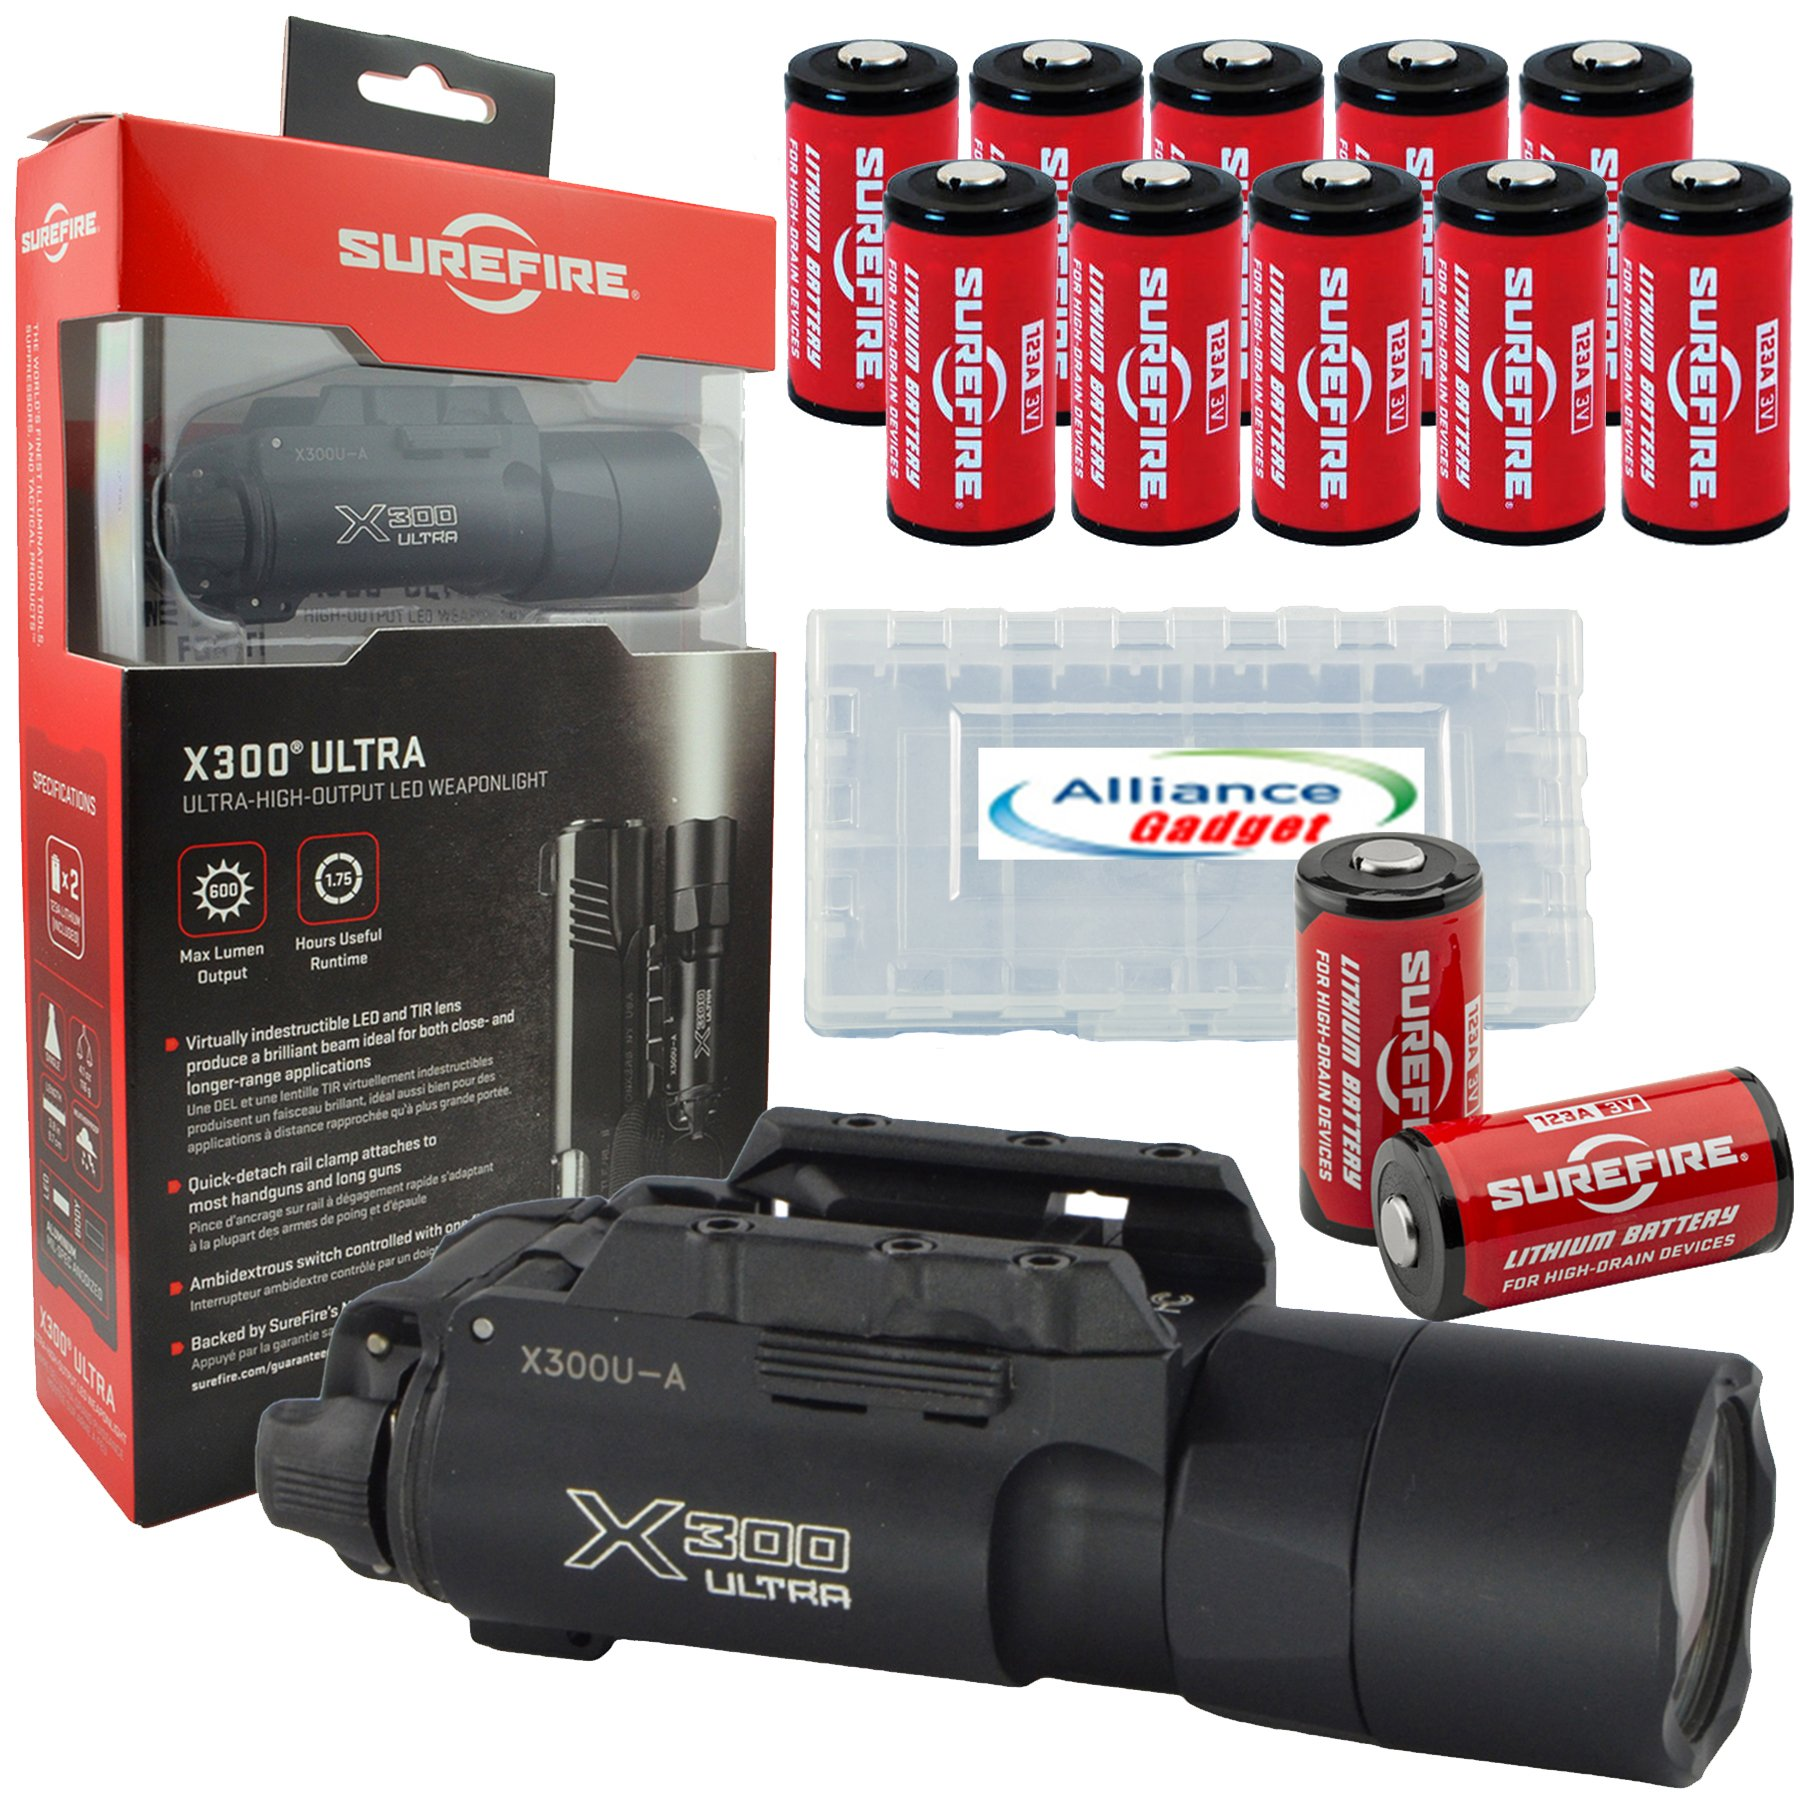 Surefire X300U-A Ultra High Output 600 Lumens LED Weapon Light with 12 Extra Surefire CR123A and 3 Alliance Gadget Battery Case by SureFire